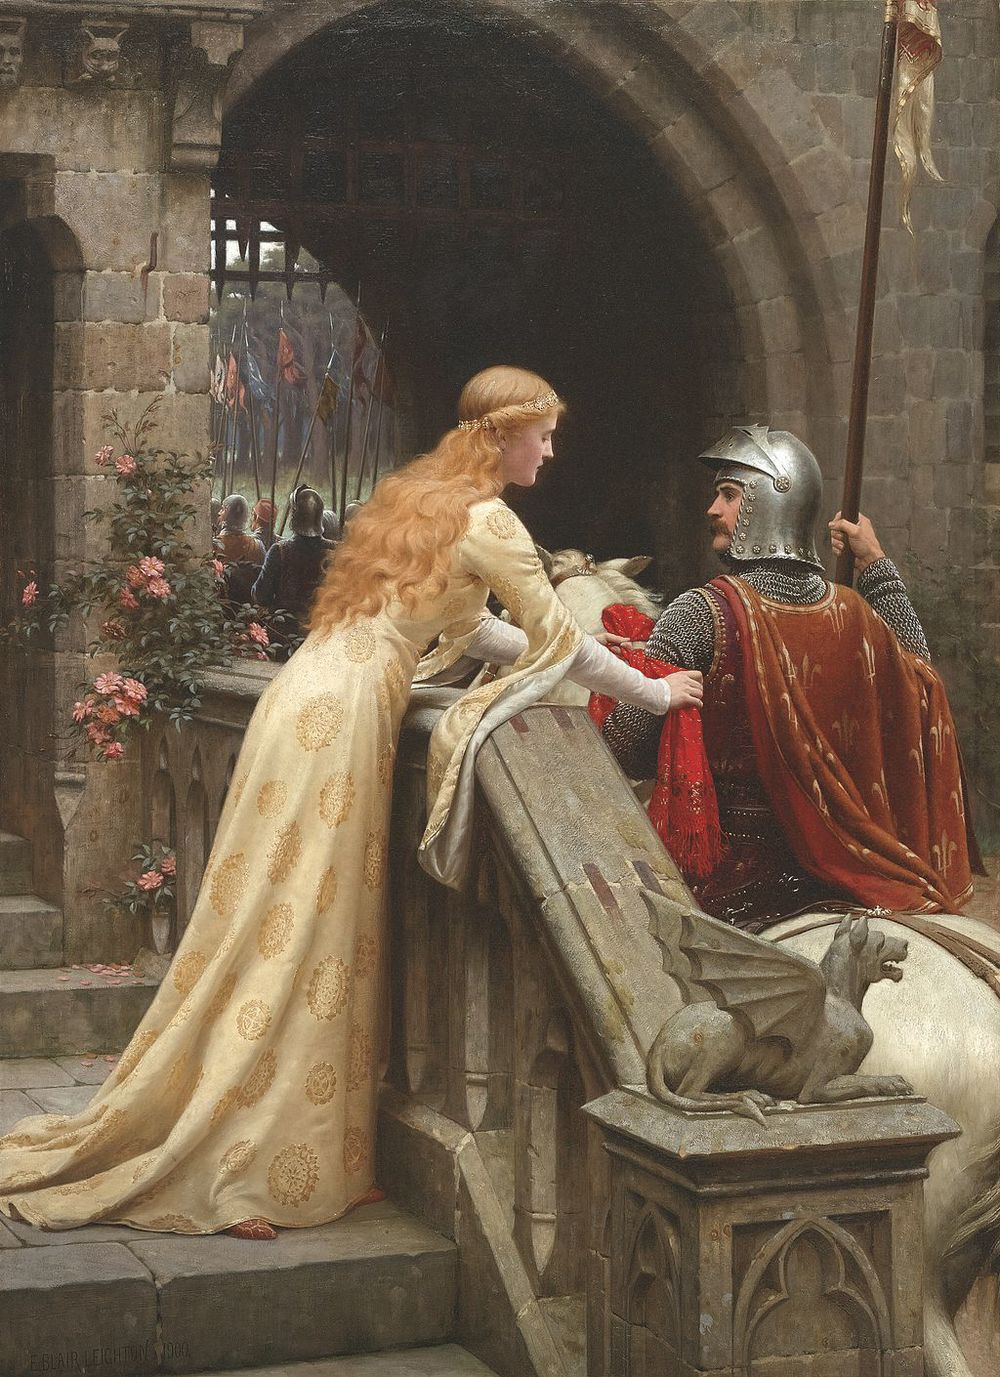 Courtly love... the romance of knights and princesses.